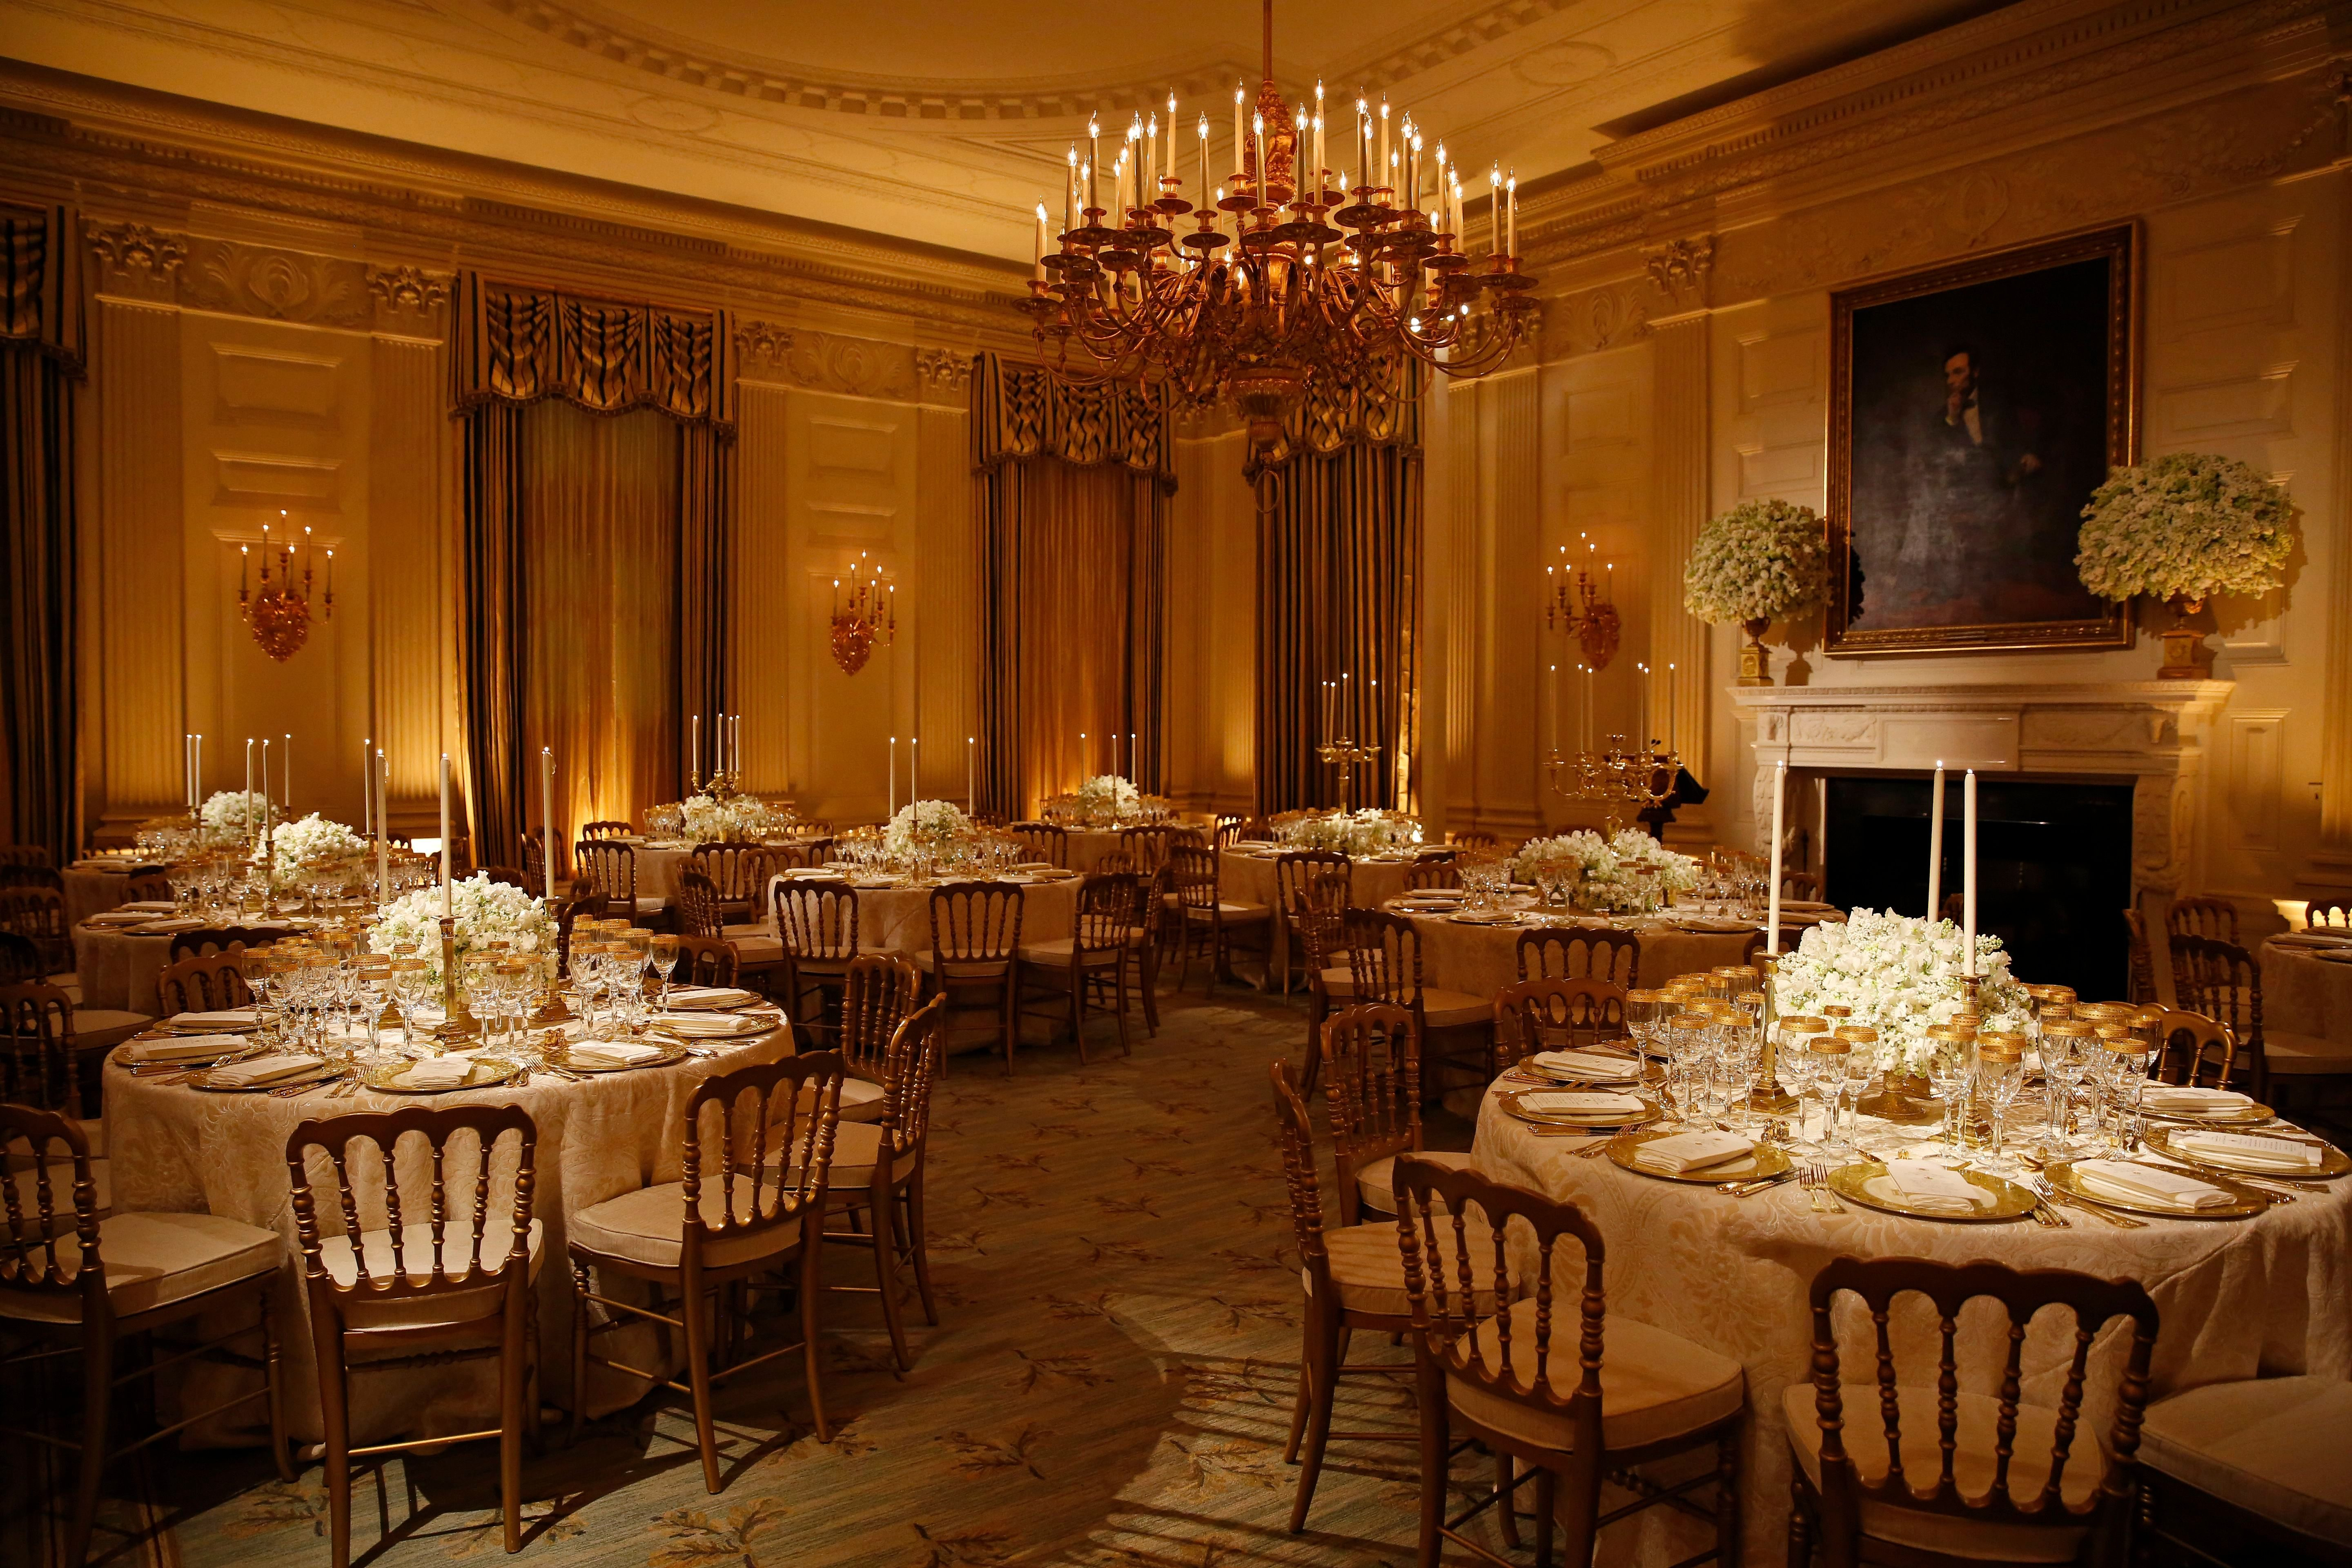 Mandatory Credit: Photo by Shutterstock (9640535v)<br /> The State Dining Room setup for tomorrow evening's State Dinner honoring President Emmanuel Macron of France and his wife, Brigitte Macron, at the White House, in Washington, DC.<br /> Donald Trump hosts Emmanuel Macron, Washington DC, USA - 23 Apr 2018